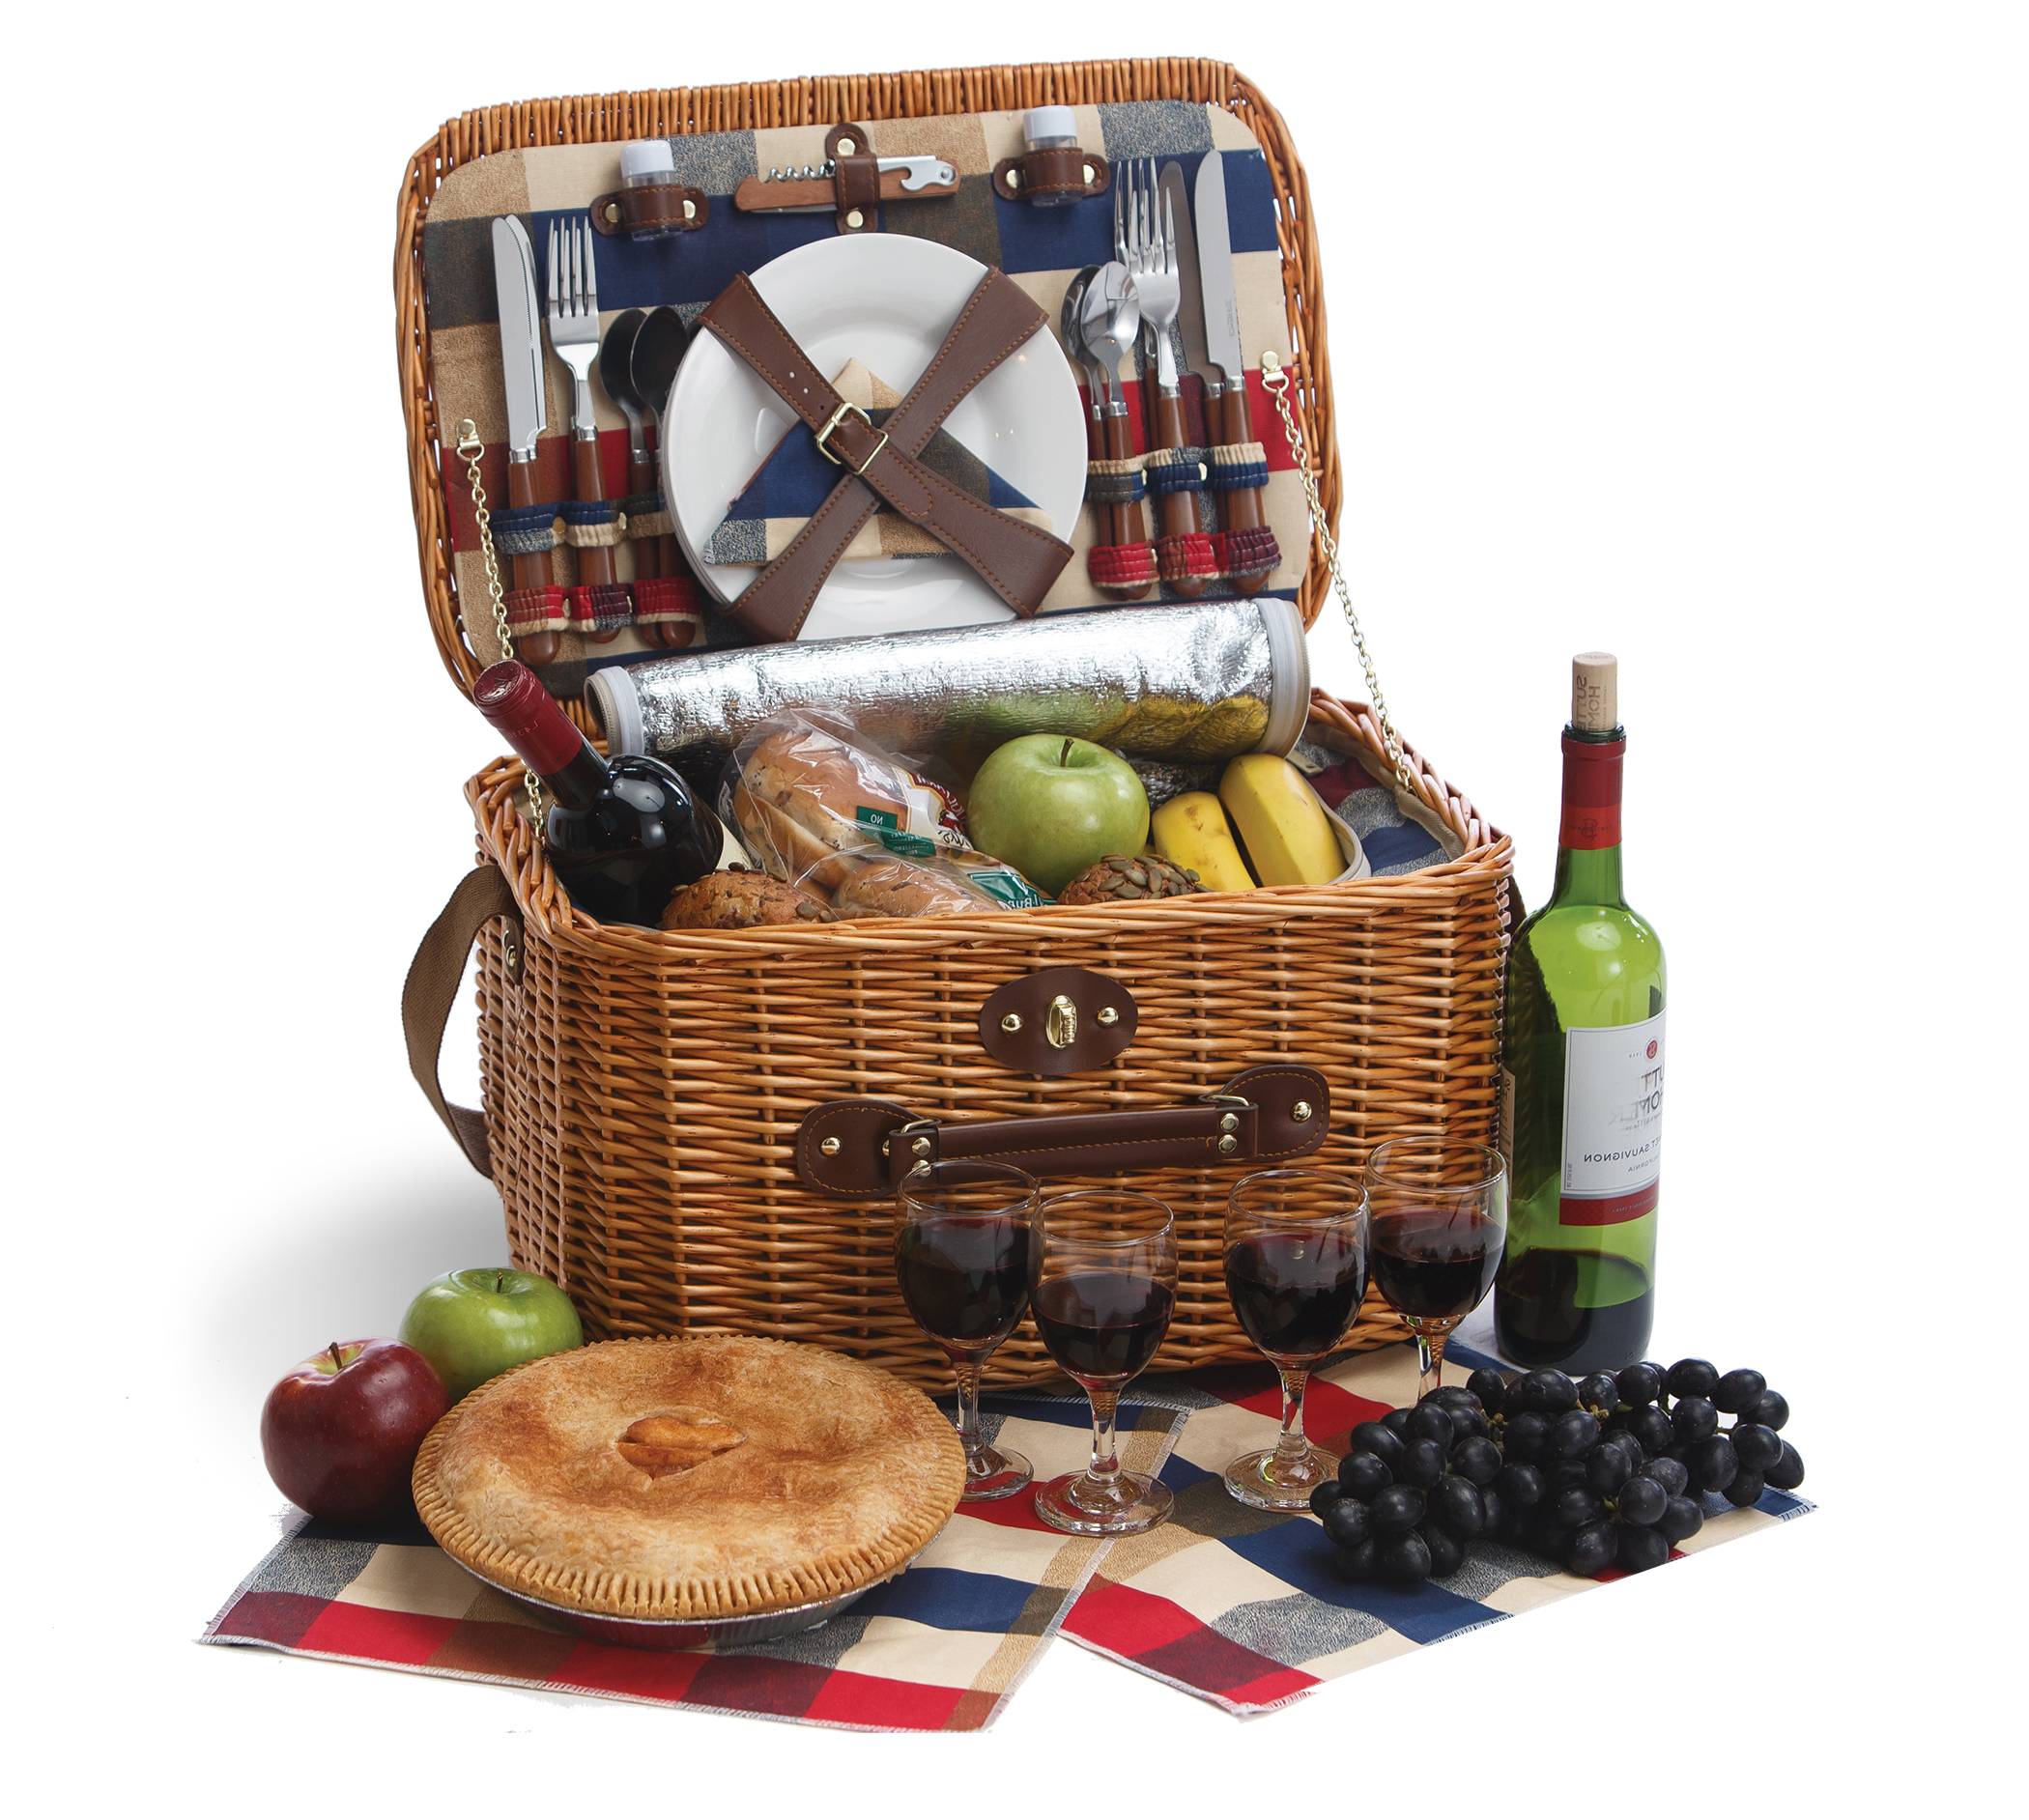 Rustica - Plaid Lining - 4 Person Picnic Basket